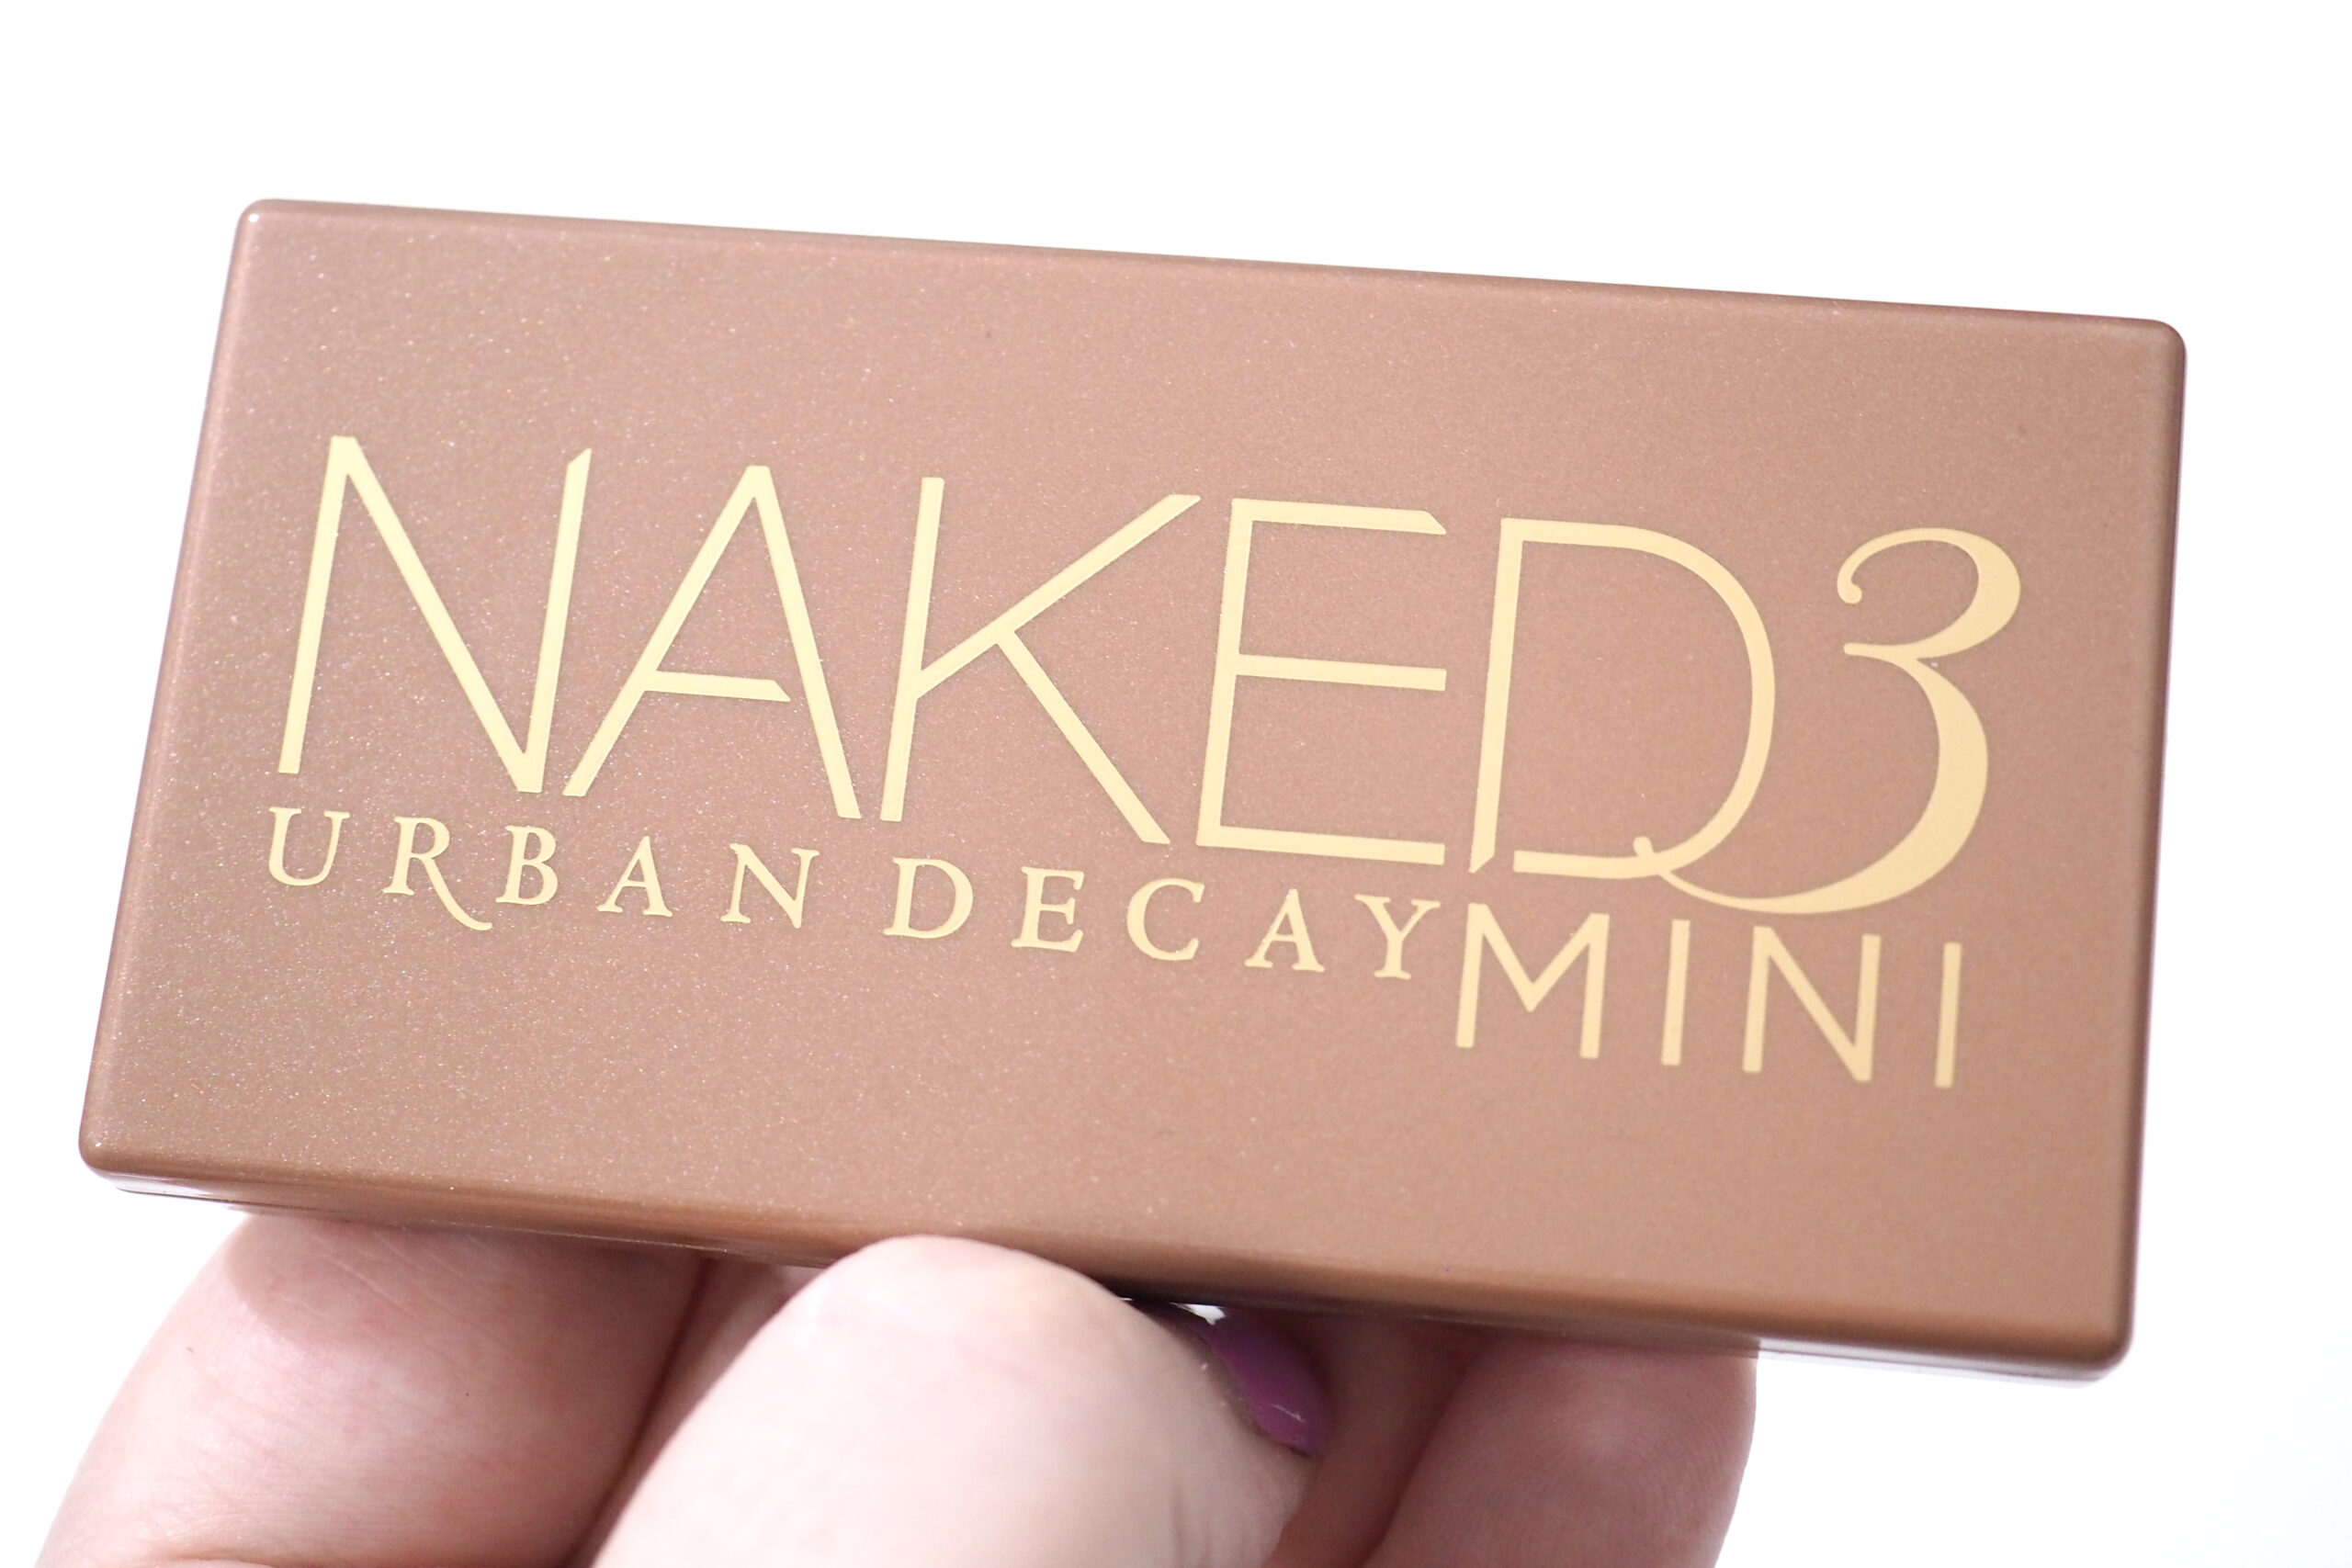 Urban Decay Naked 3 Mini Eyeshadow Palette Review / Swatches